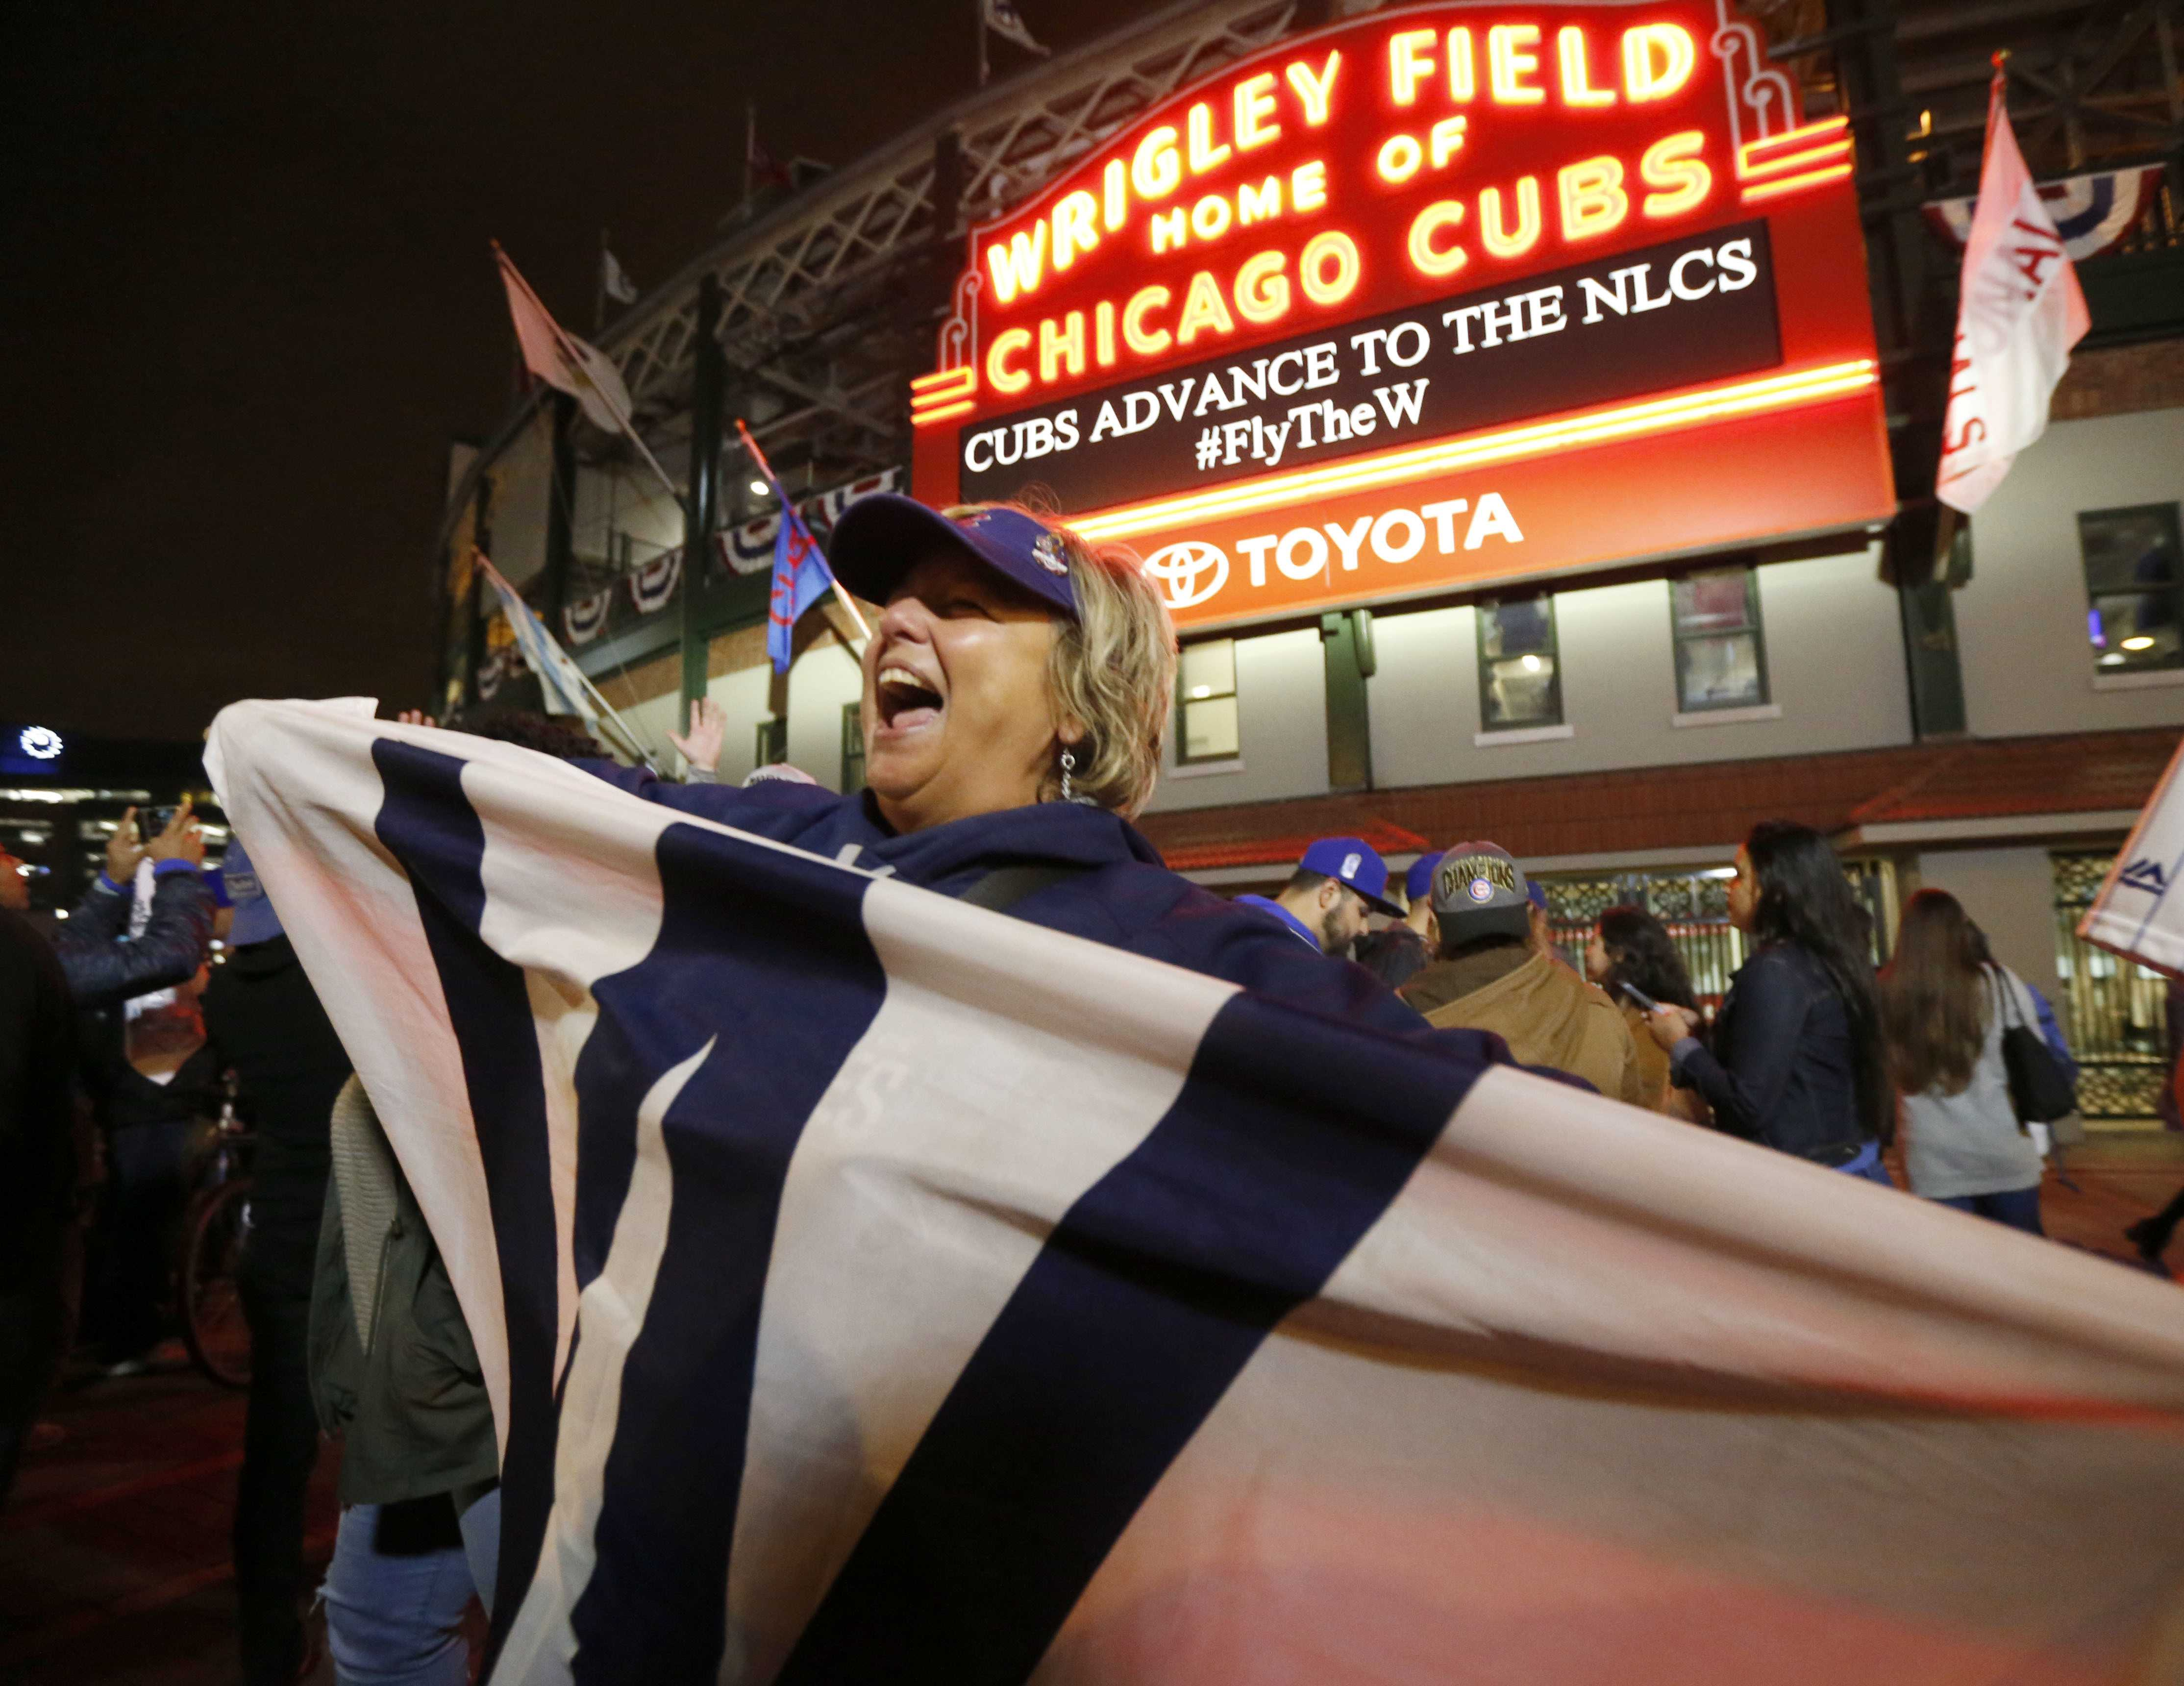 Chicago Cubs fans celebrate outside Wrigley Field on Thursday, Oct. 12, 2017, in Chicago, after the Cubs defeated the Washington Nationals 9-8.  (Charles Rex Arbogast/The Associated Press)